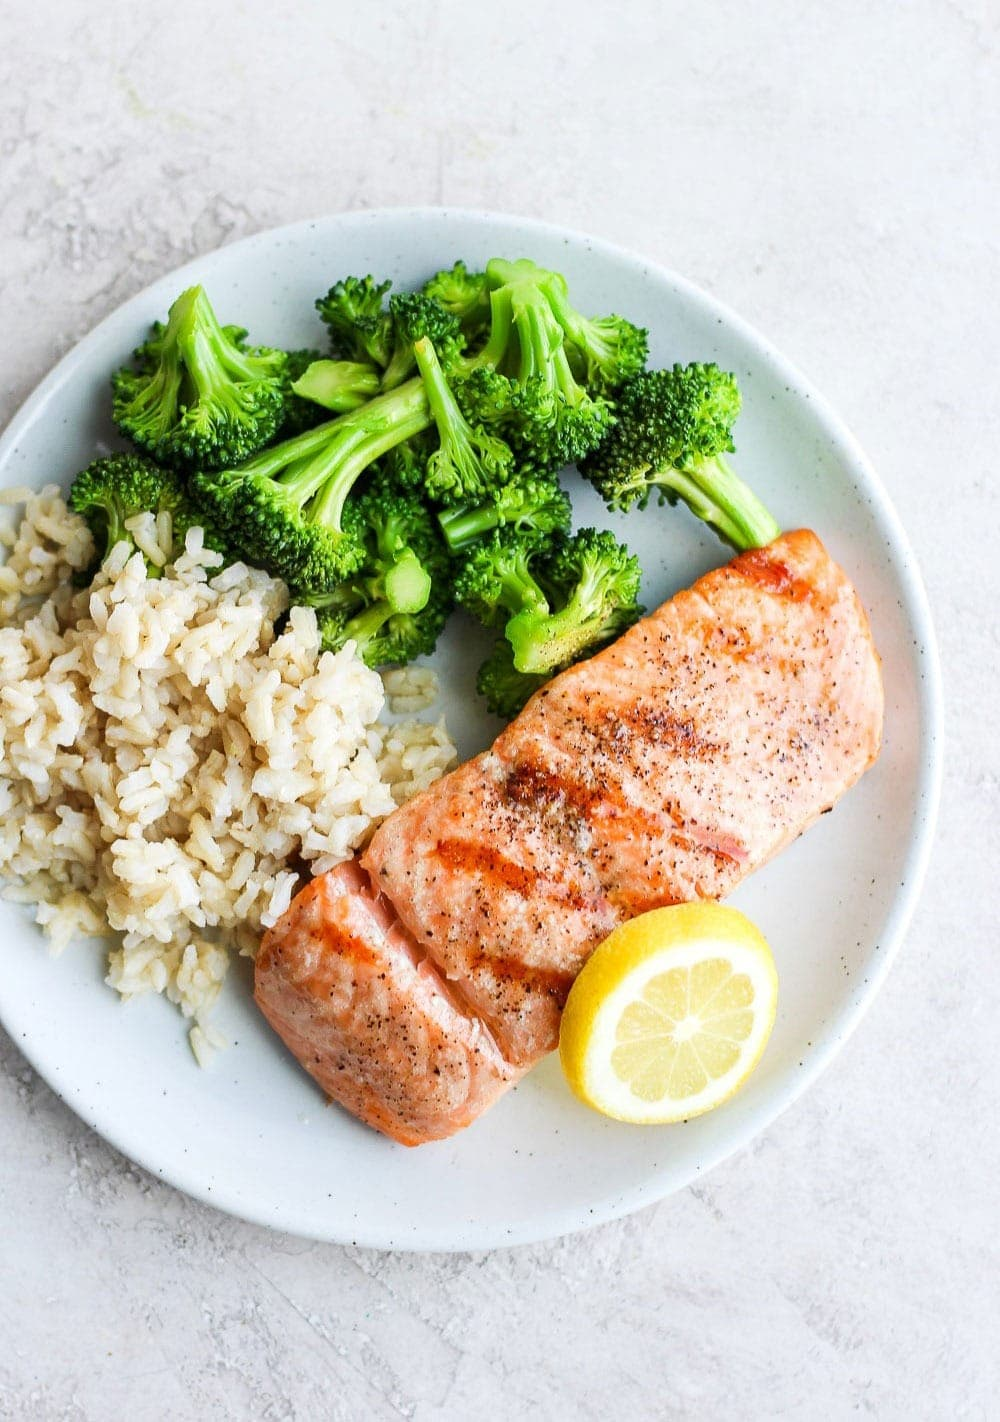 grilled salmon on a plate with a slice of lemon